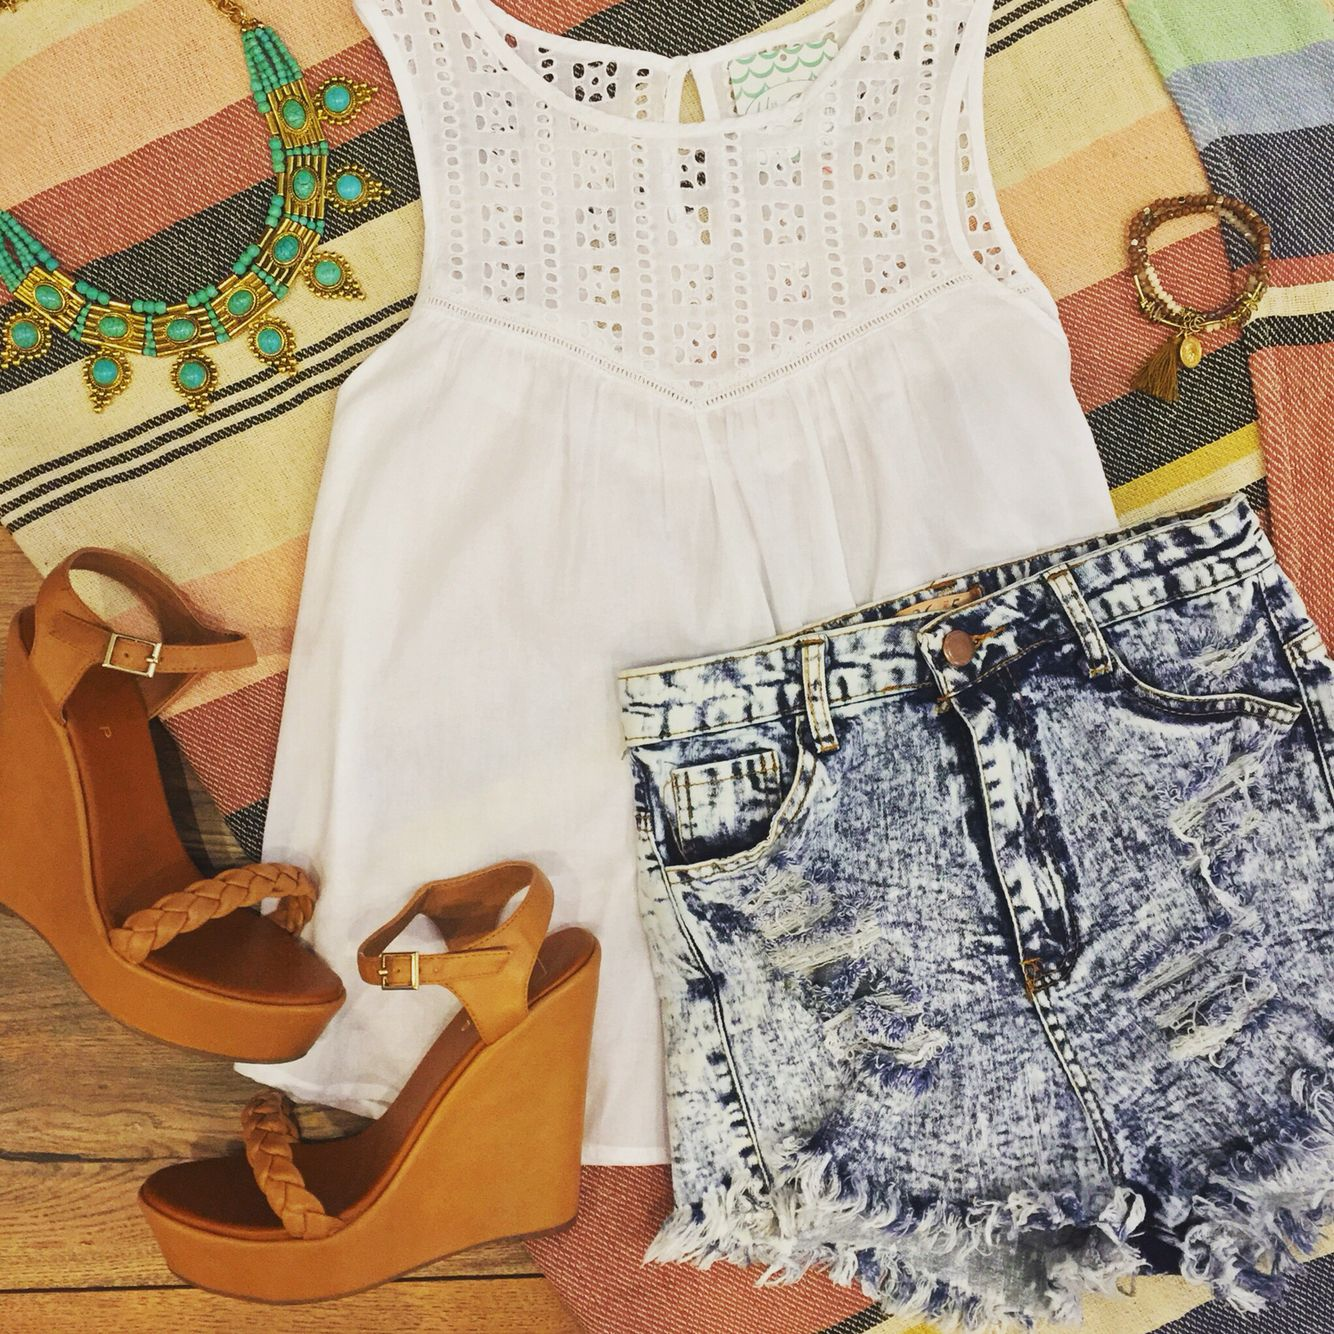 Spring break READY  Eyelet White Tank ($24.99 #4thandocean) High Waisted Fray Acid Shorts ($24.99 #sophieandtrey) Cairo Bib Necklace ($29.99 #statements) Braided Wedges Tan ($34.99 #statements) Don't forget to check out our V-Day Collection! Score 10% OFF these items  in store and online using code HEART10  Stores are open today from 10-8p! Come shop with us or check out what's new online at sophieandtrey.com with F R E E shipping on all orders! XO #valentines #valentine #vday #sale…